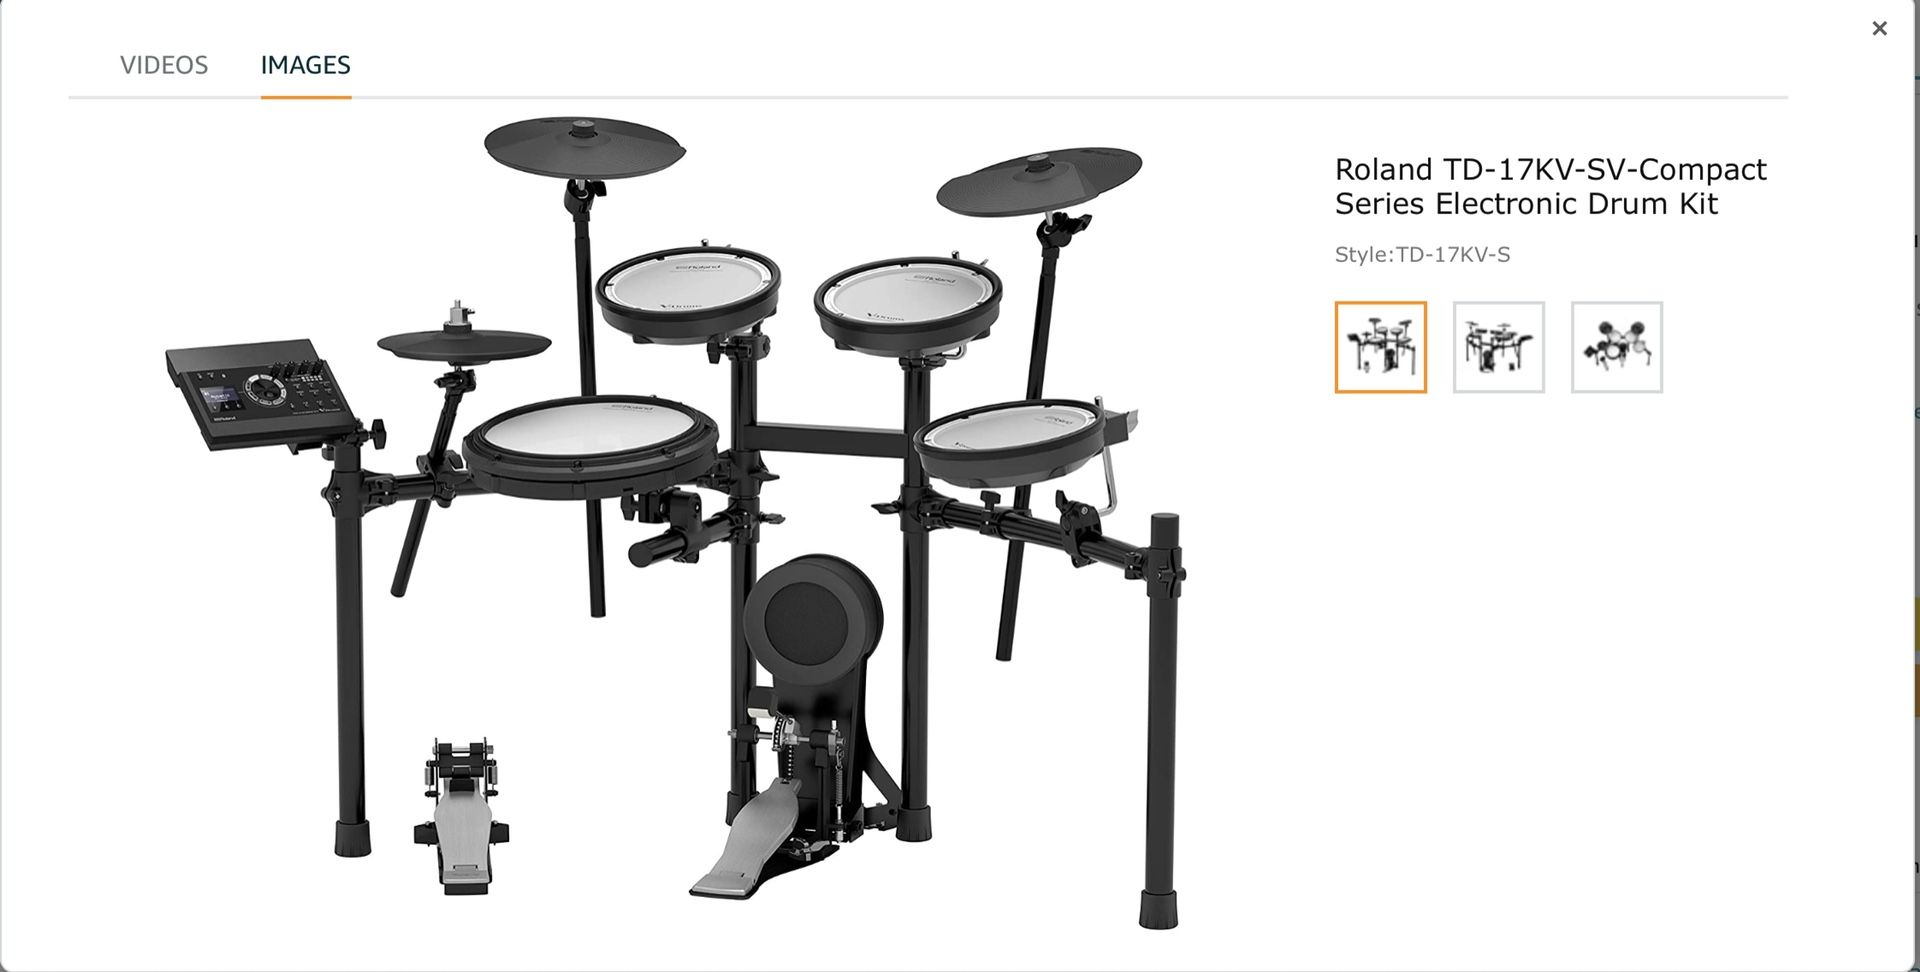 Roland Roland V-Compact Series Electronic Drum Kit, Set (TD-17KV-S) 2020 + Free Accessories Of Value 203.05 Dollars